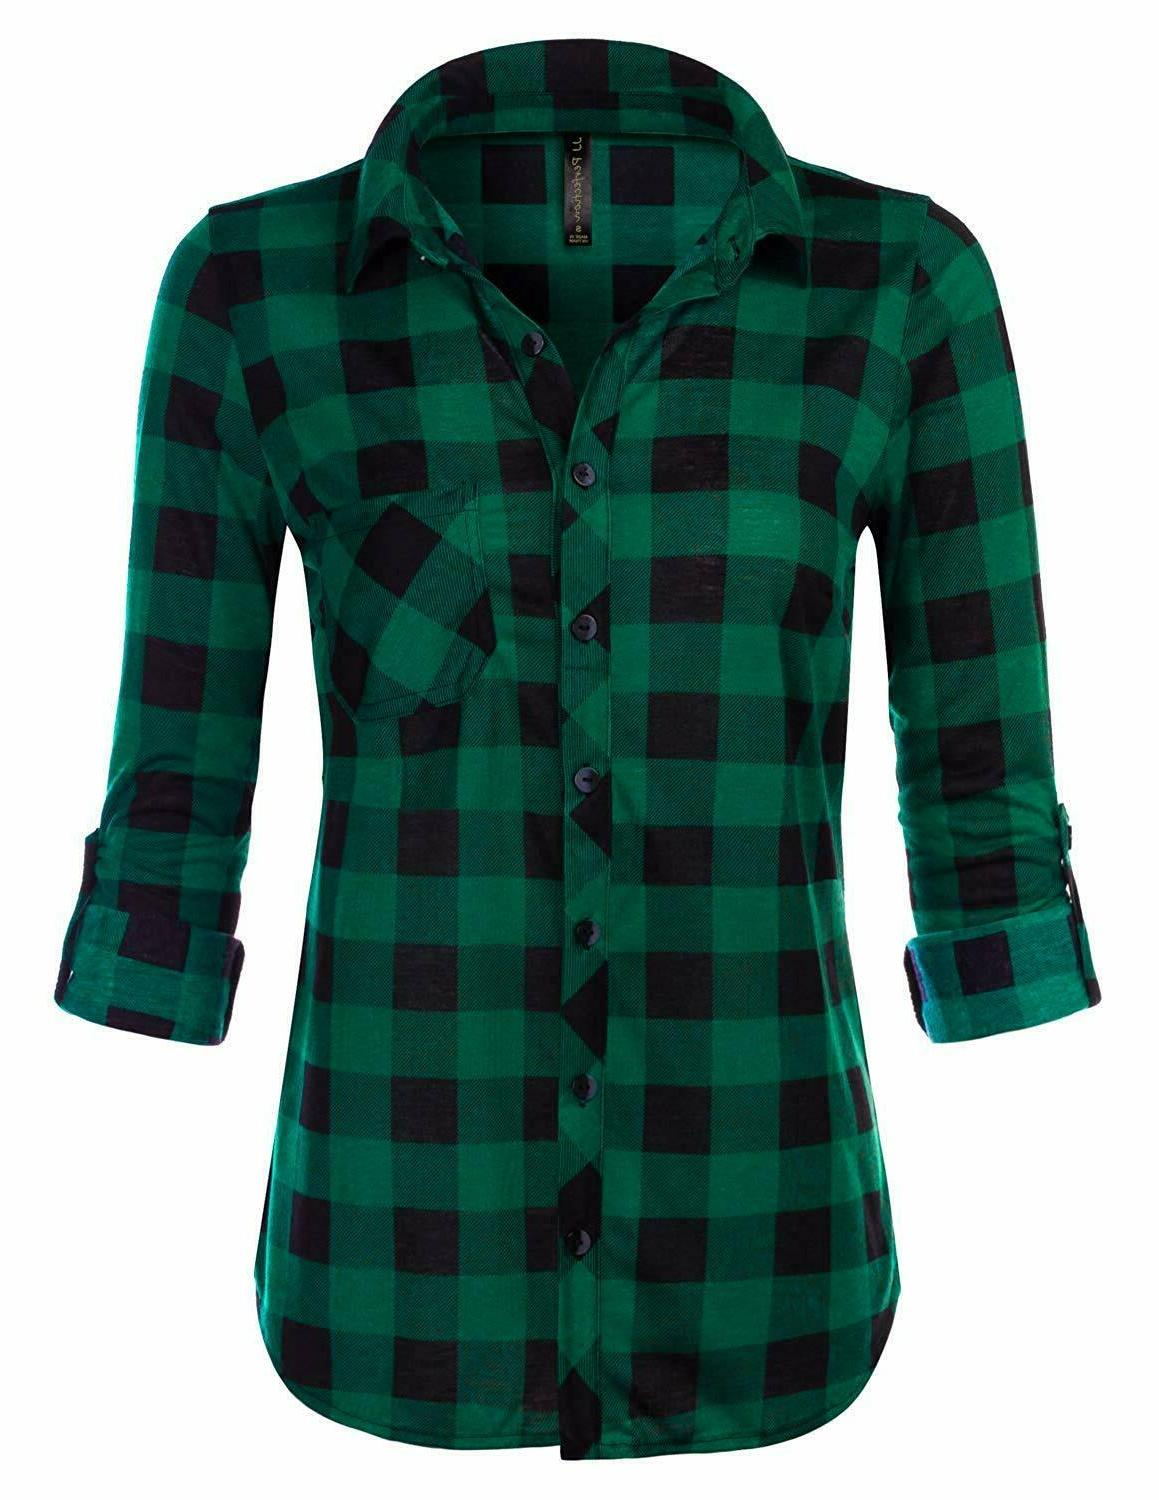 jj perfection womens long sleeve collared button